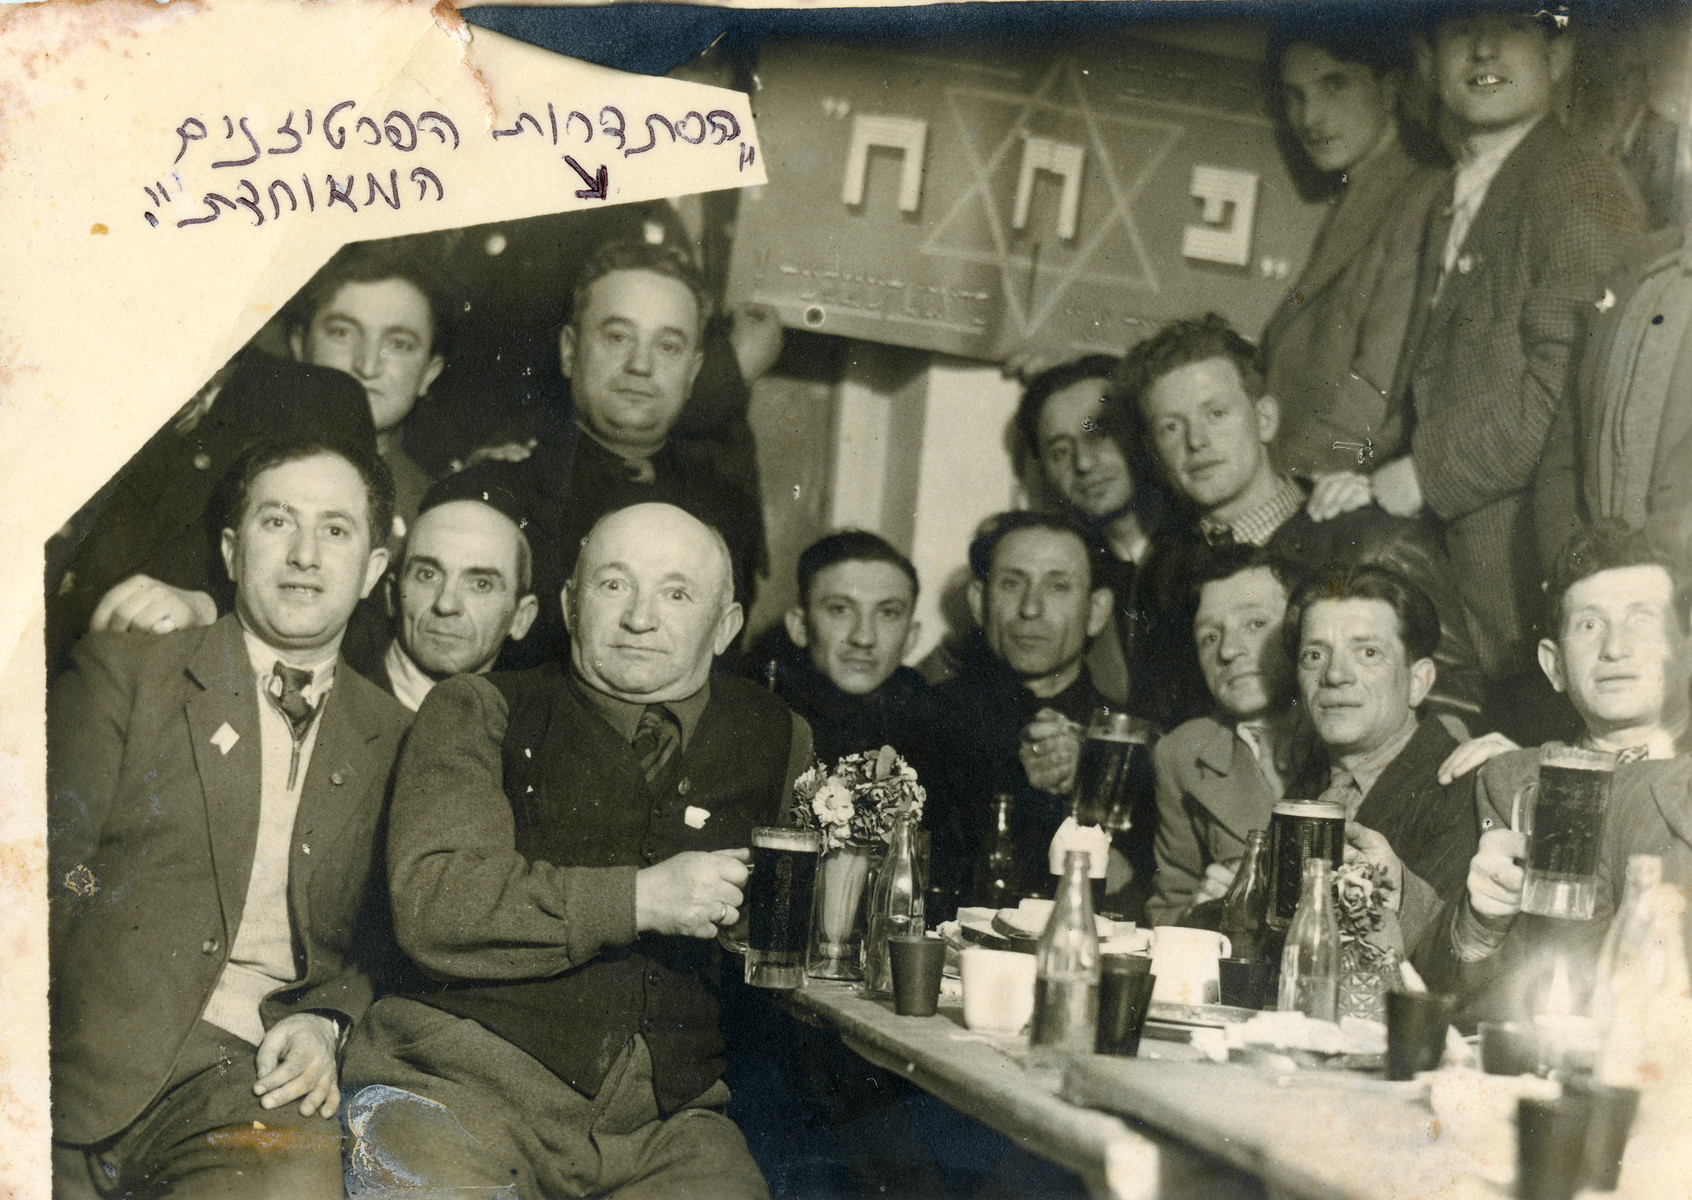 Former partisans and members of HaHistadrut Hapartisanim Ha'Meuchedet, gather for a celebration at the end of the war.   Zvi Szklut is on the far left.